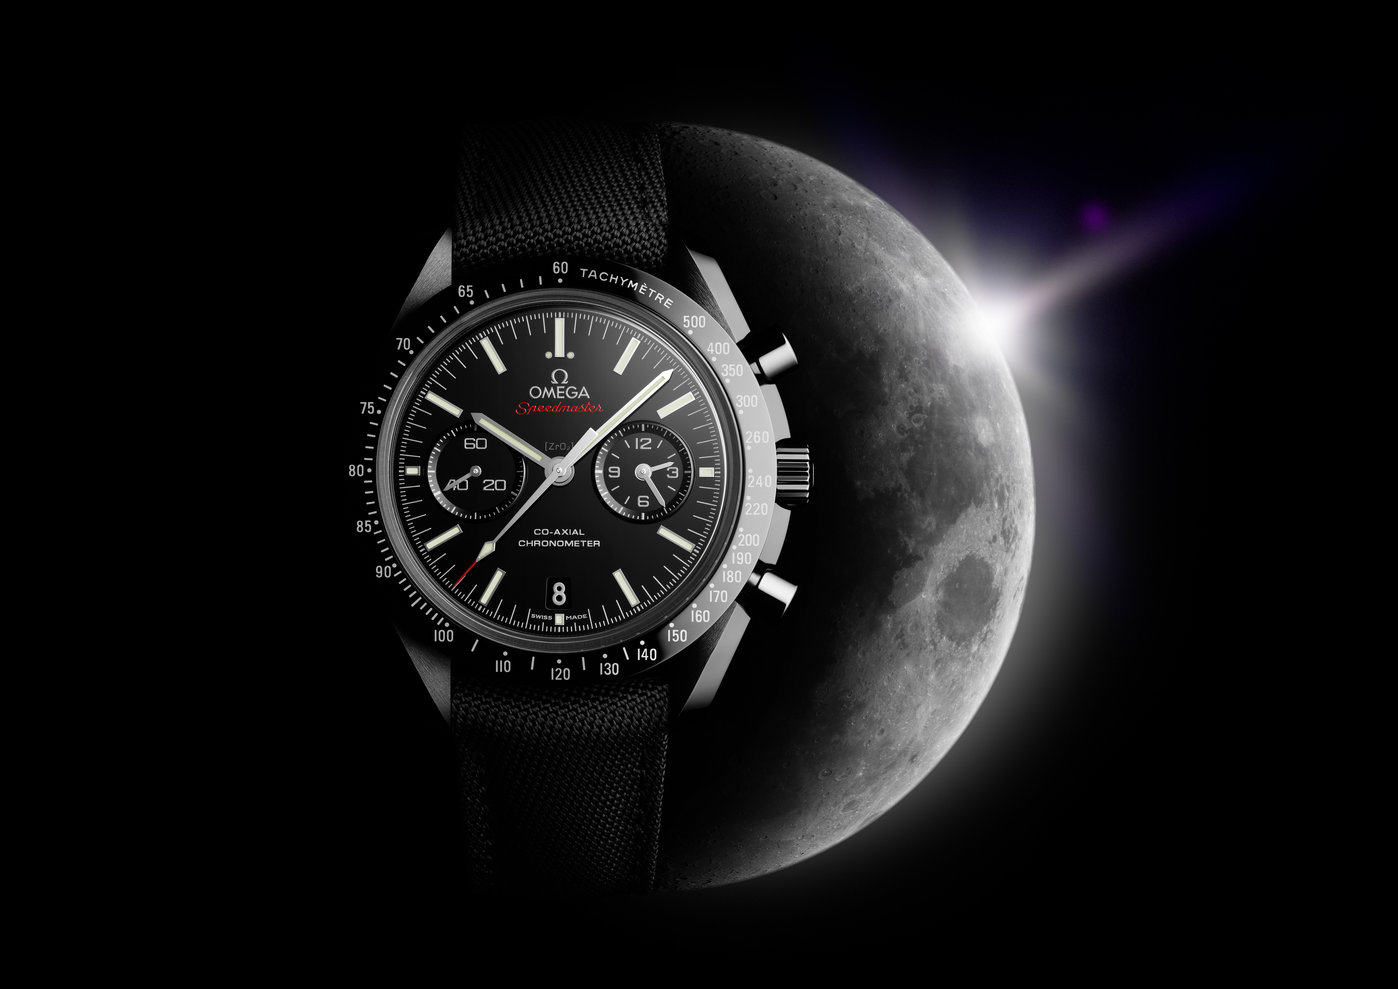 Omega-Dark-Side-of-Moon.jpg